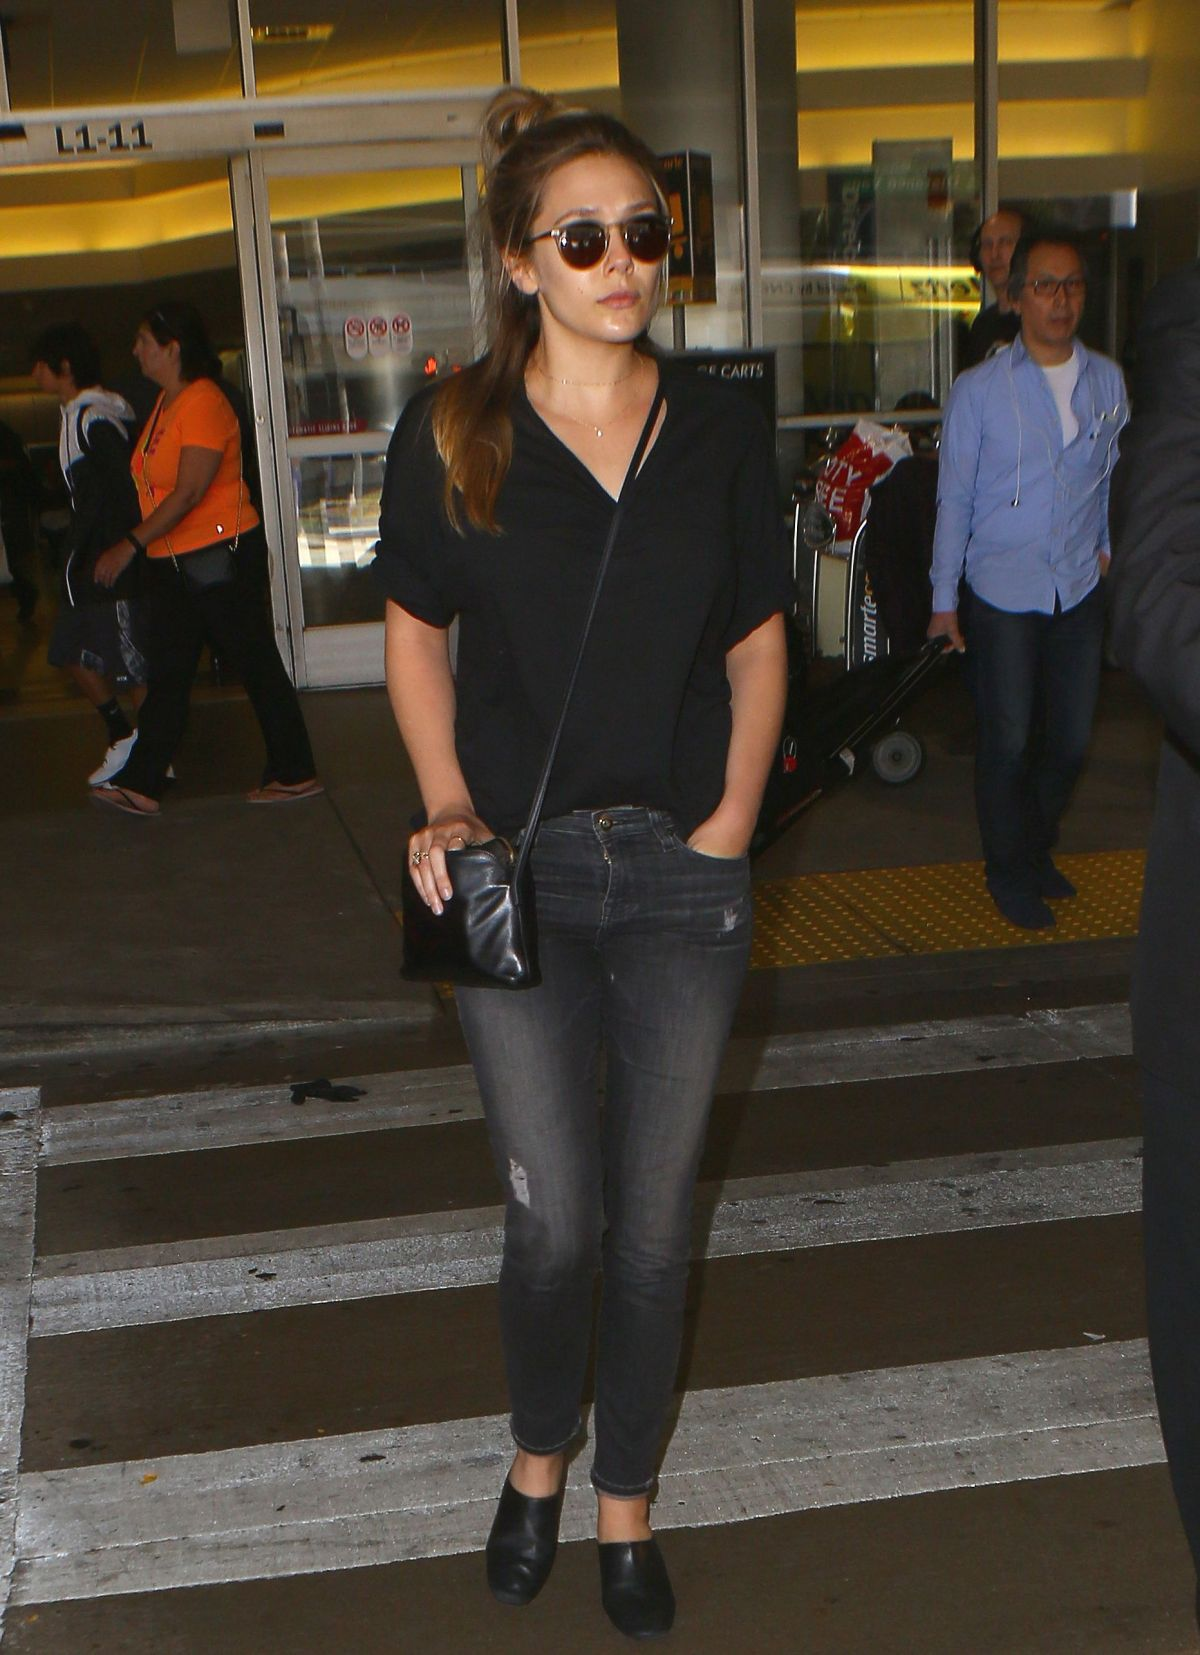 ELIZABETH OLSEN at Los Angeles International Airport 06/07/2016